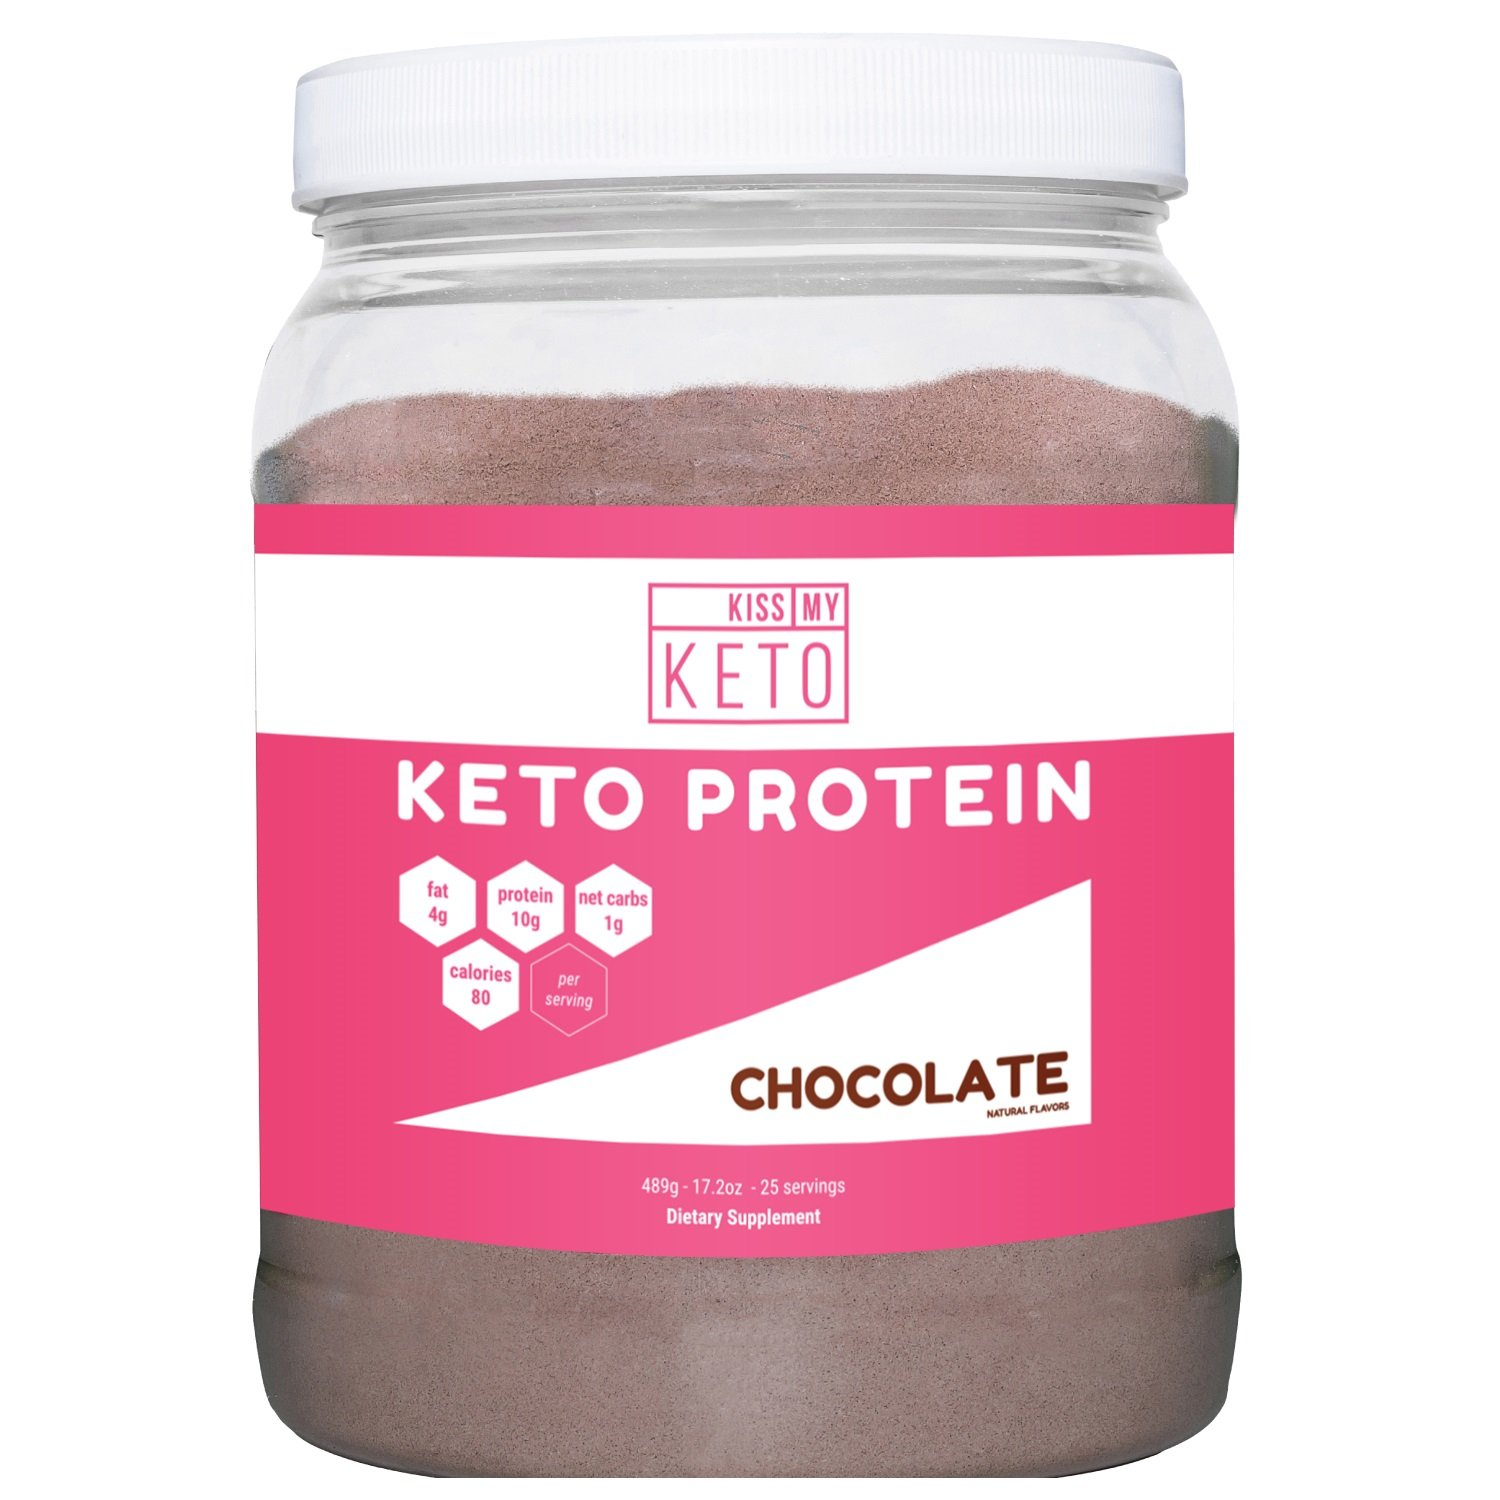 Kiss My Keto Protein Powder - Keto Collagen Supplement, Grassfed Collagen Peptides & MCT Oil Powder, Low Carb Keto Shake or Keto Coffee Creamer for Ketogenic Diets, 25 Servings (Chocolate) by Kiss My Keto